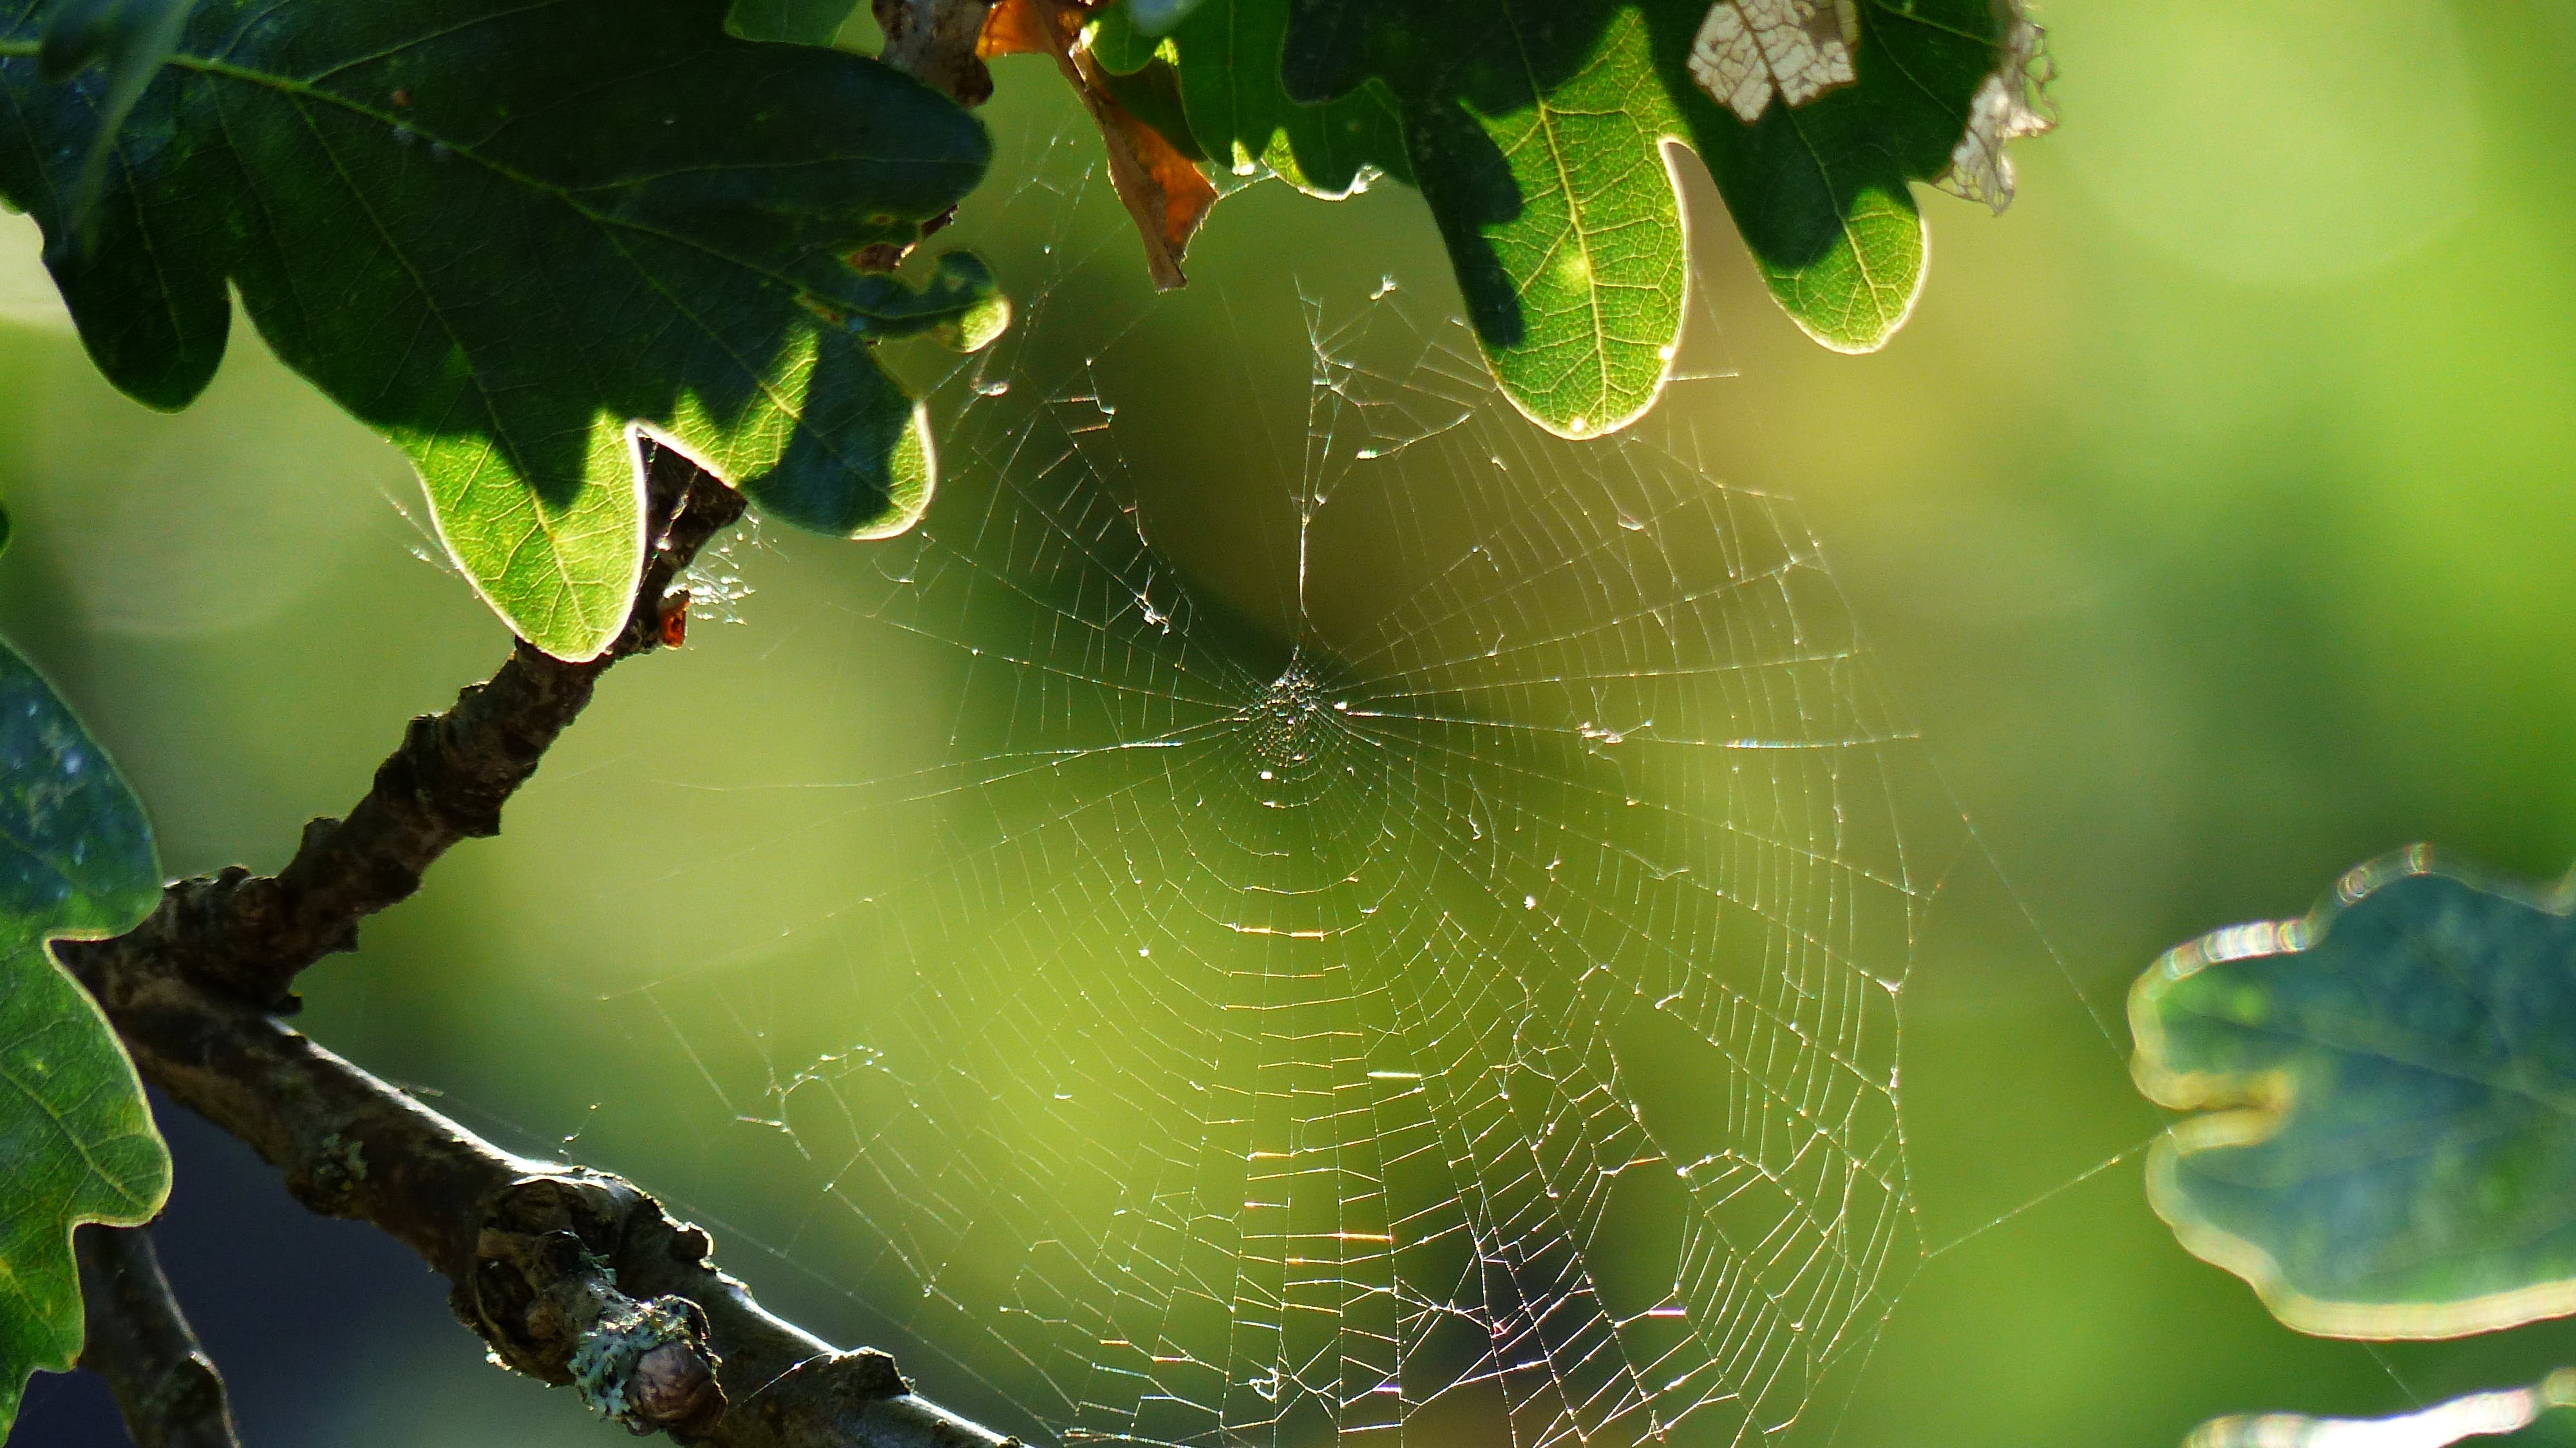 Free stock photo of autumn, rain, spiderweb